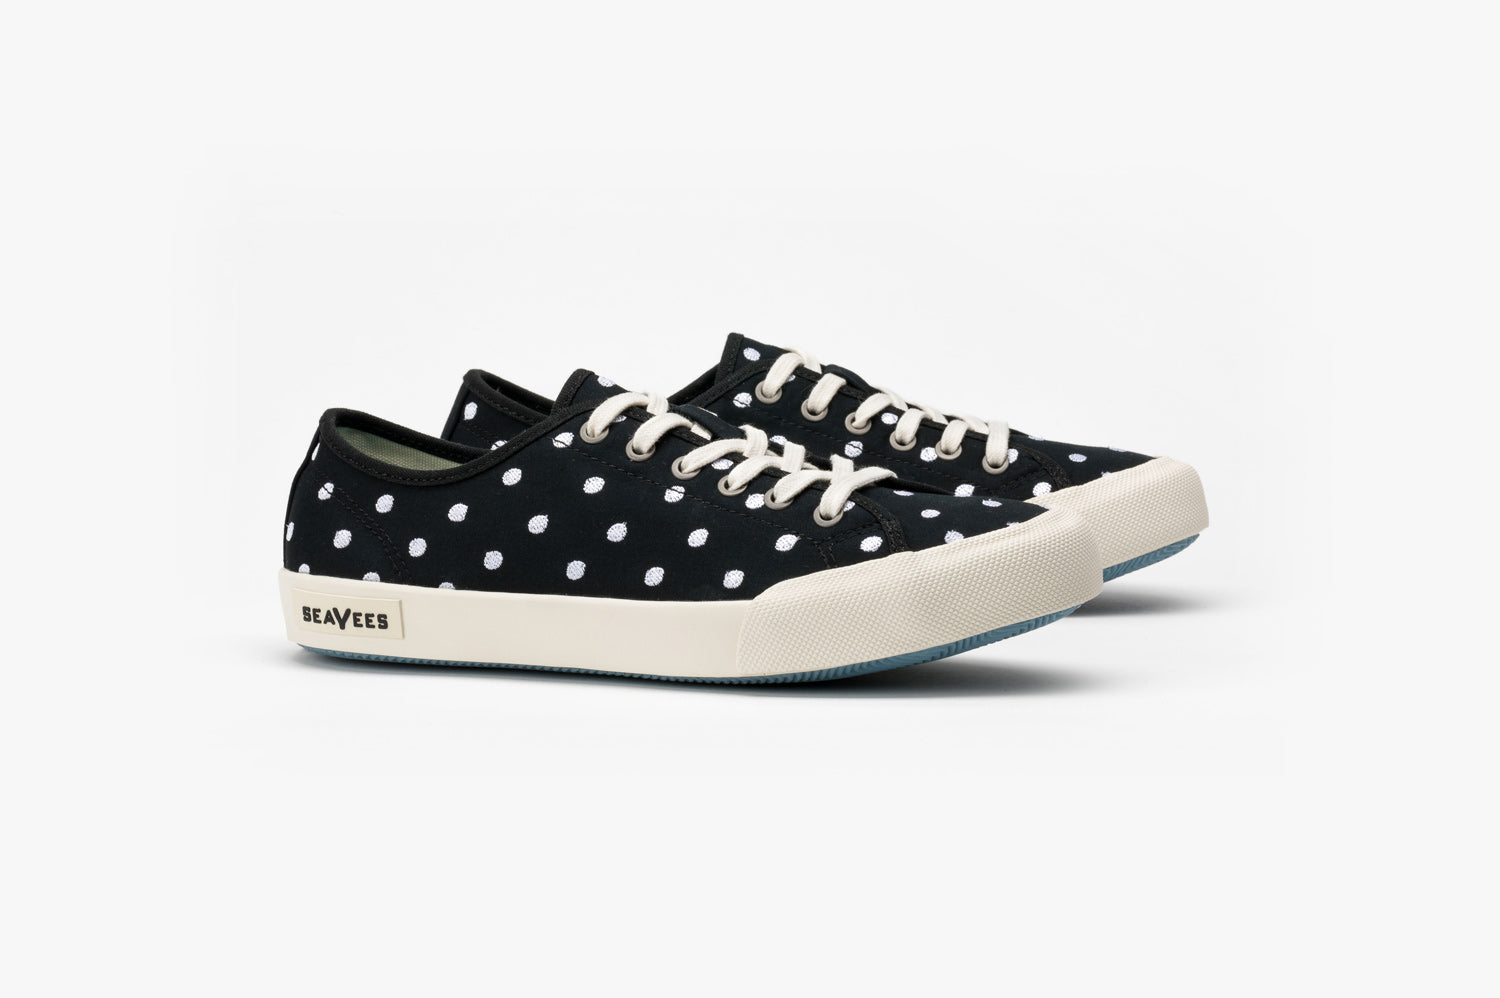 Womens - Monterey Sneaker Embroidery - Black Dot